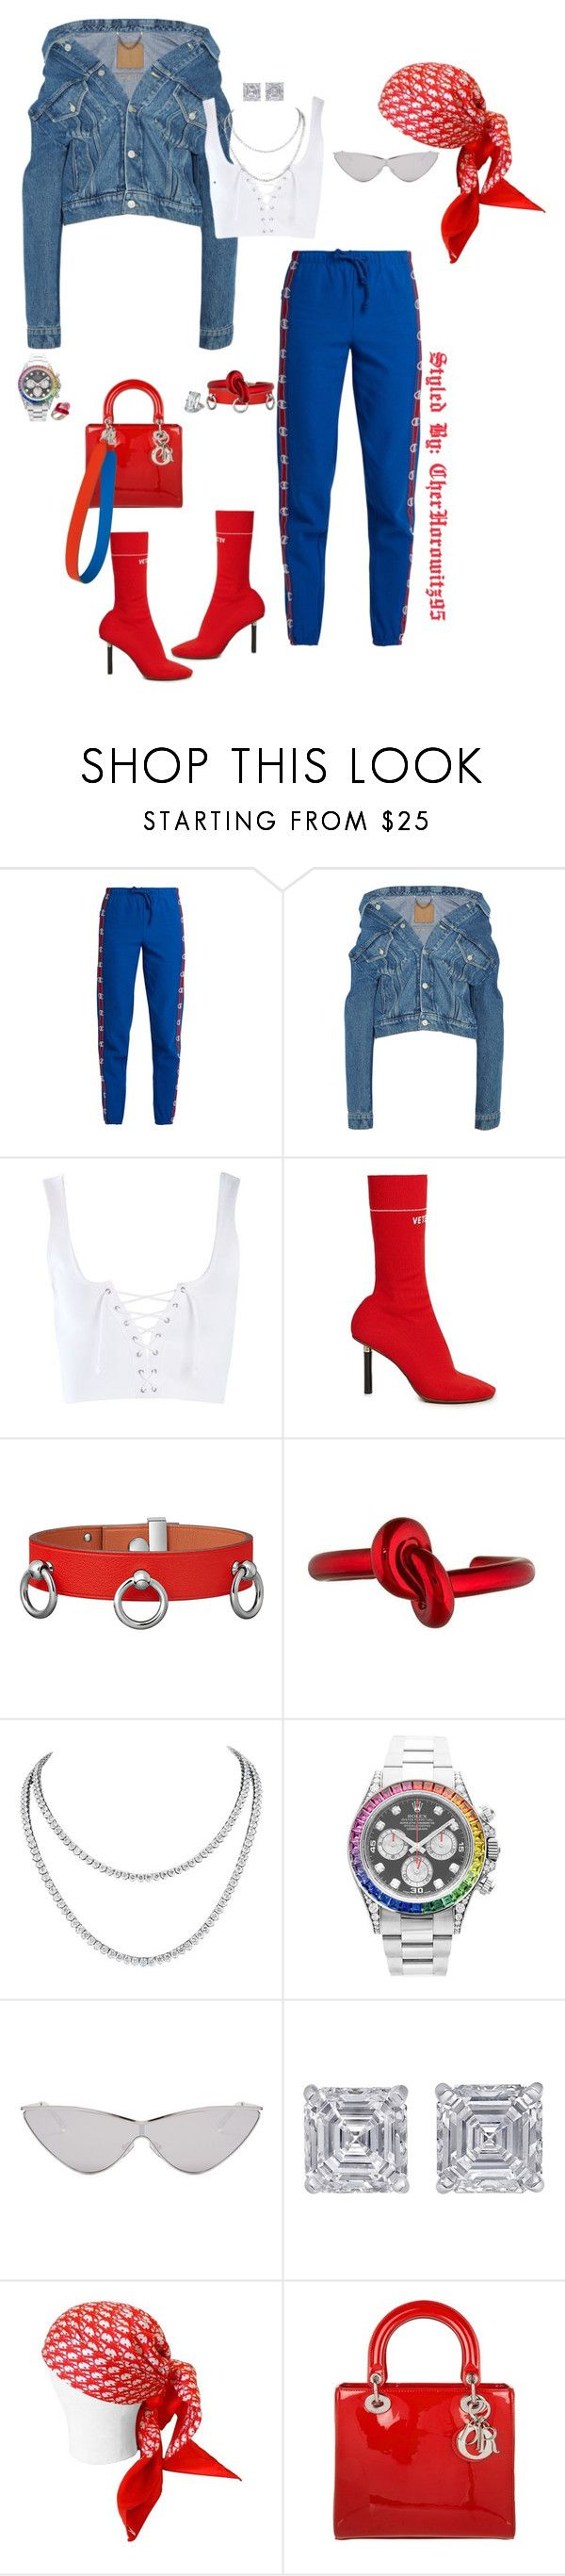 """""""Untitled #836"""" by cherhorowitz95 ❤ liked on Polyvore featuring Vetements, Balenciaga, Topshop, Chopard, Rolex, Le Specs, Jewels by Viggi, Christian Dior, Fendi and Lydia Courteille"""